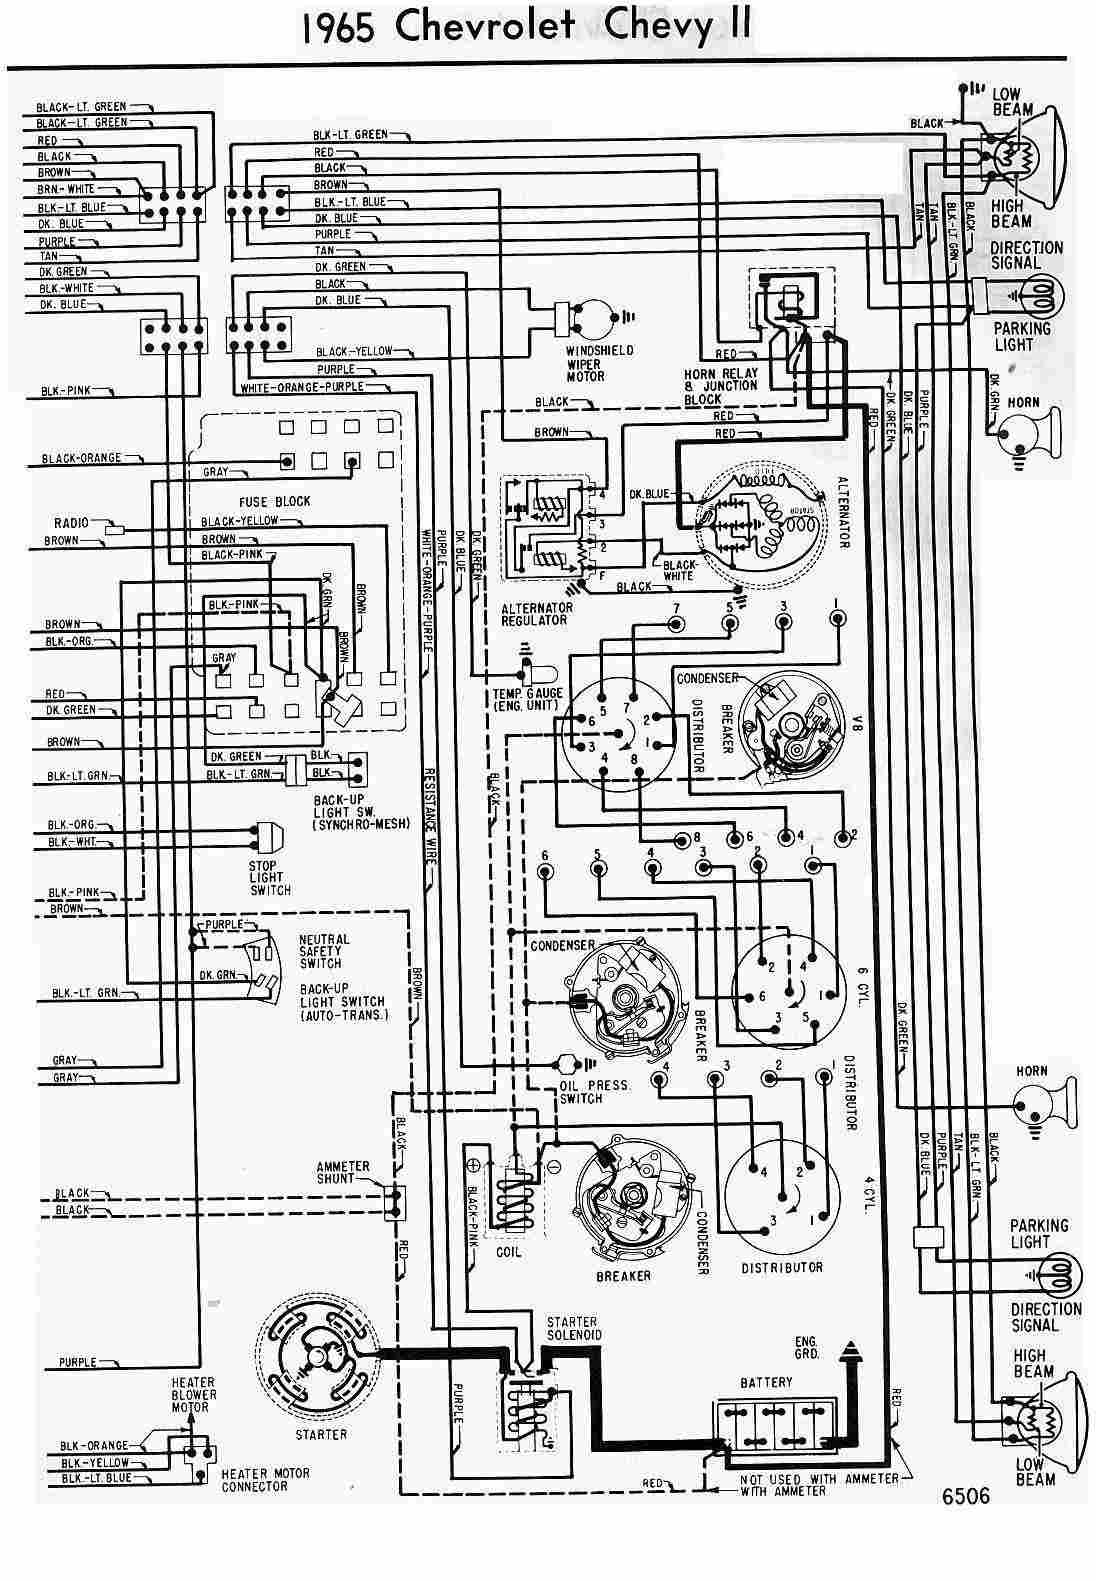 small resolution of 1970 camaro wiring diagram as well chevy wiring diagrams scematic 1972 chevy camaro wiring schematic 1972